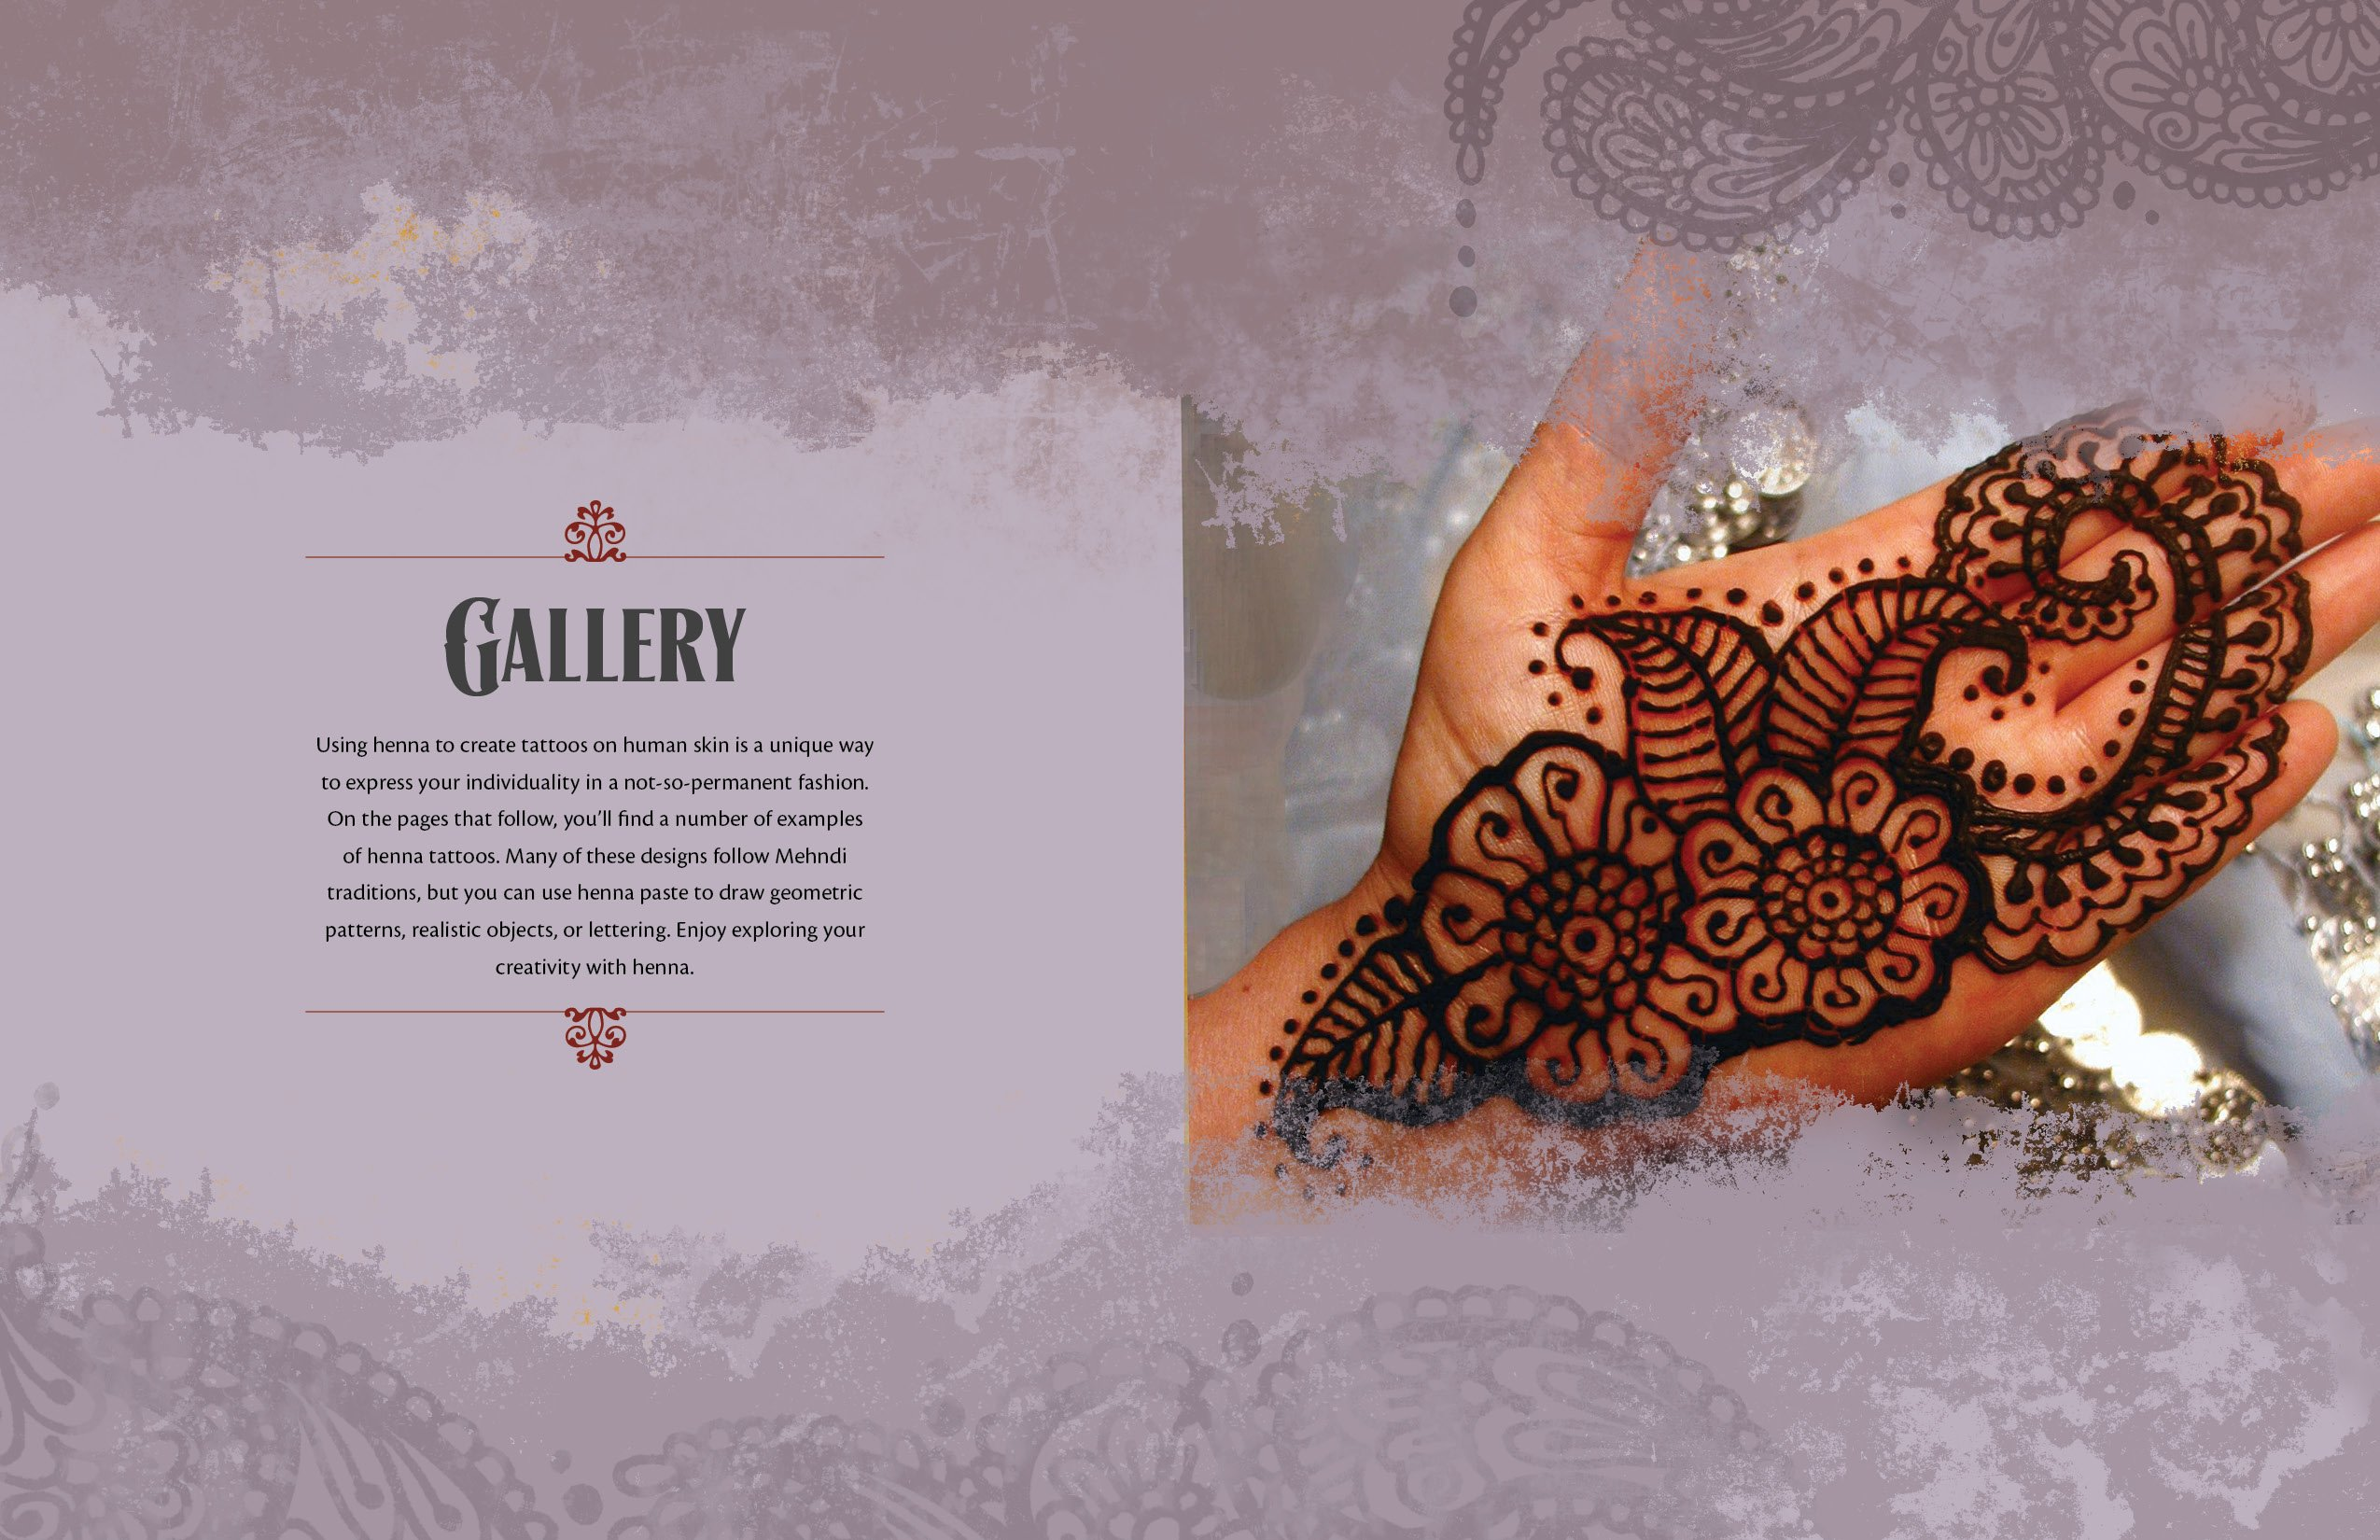 Mehndi Henna Pictures : Teach yourself henna tattoo: making mehndi art with easy to follow